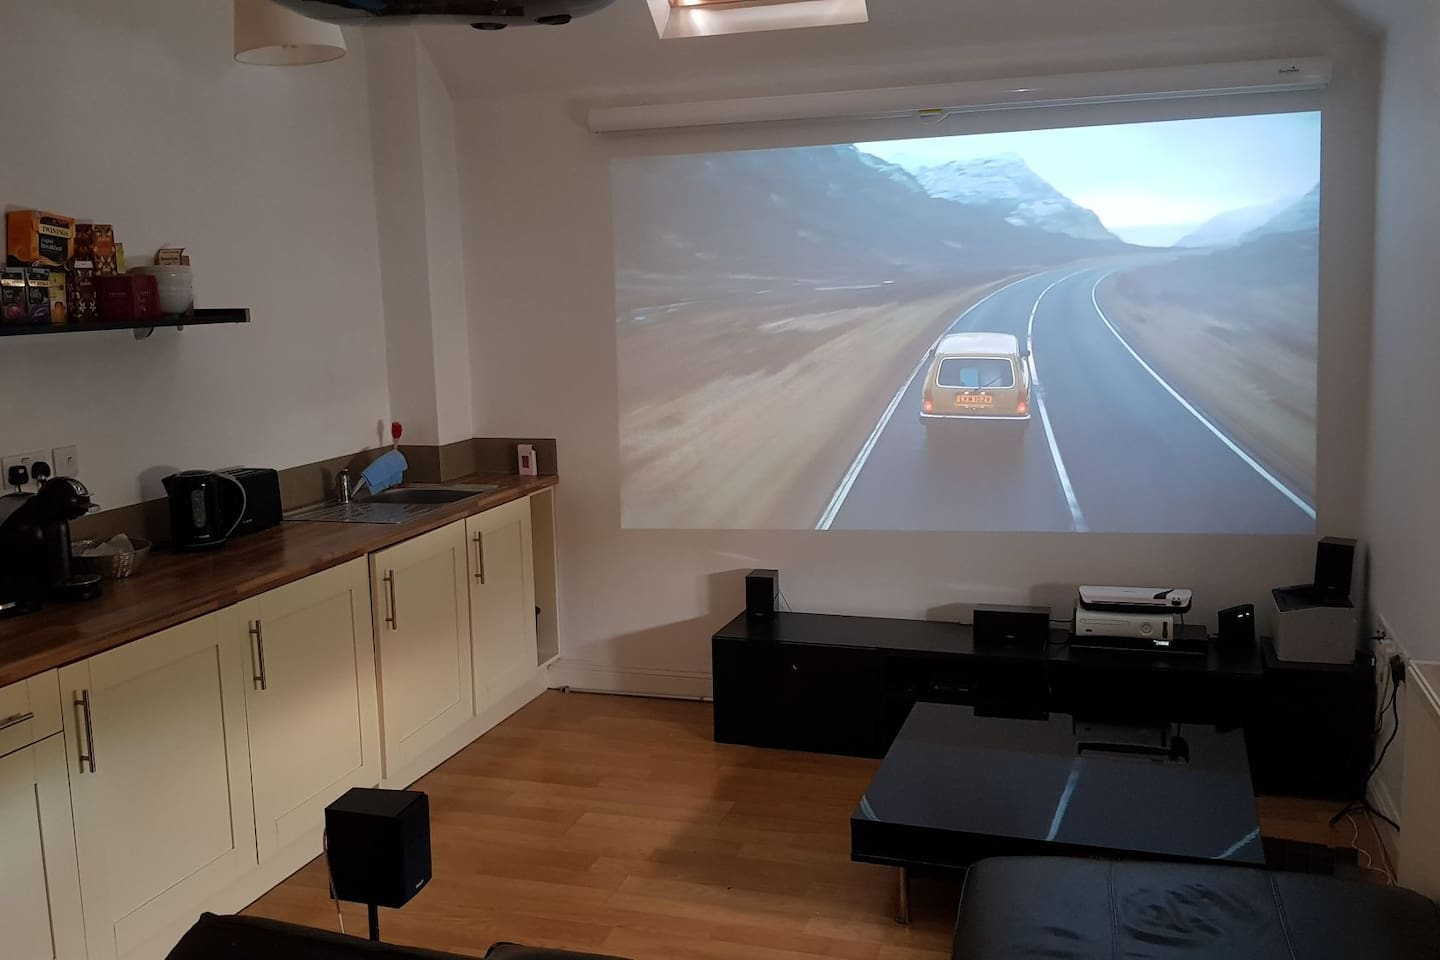 Lounge/kitchen area and projector